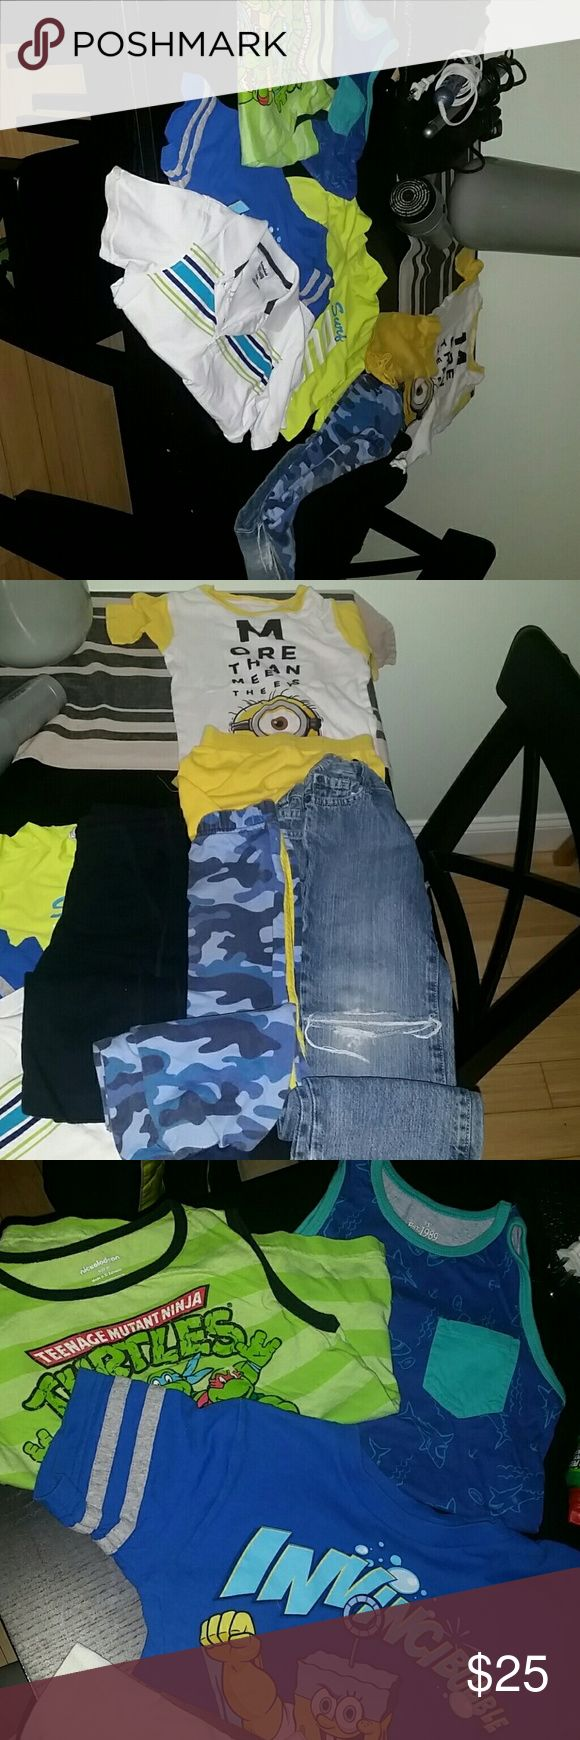 5t kids lot One pair of distressed children place jeans. Cut at knee and torn at bottom on purpose. Blue camo batman sweats w/yellow stripe on outside of each leg. So cute. Black carter sweats. Koala bright yellow surf short sleeve. 2 piece minions pj short set. Ninja Turtle and Dino sleeveless toos. Short sleeve white w stripes only one in just great shape not exc. Sponge bubble shirt is only one that's a 4t but same size seems as others. .shipping free 100+orders.free thanku gift(s)w/any…